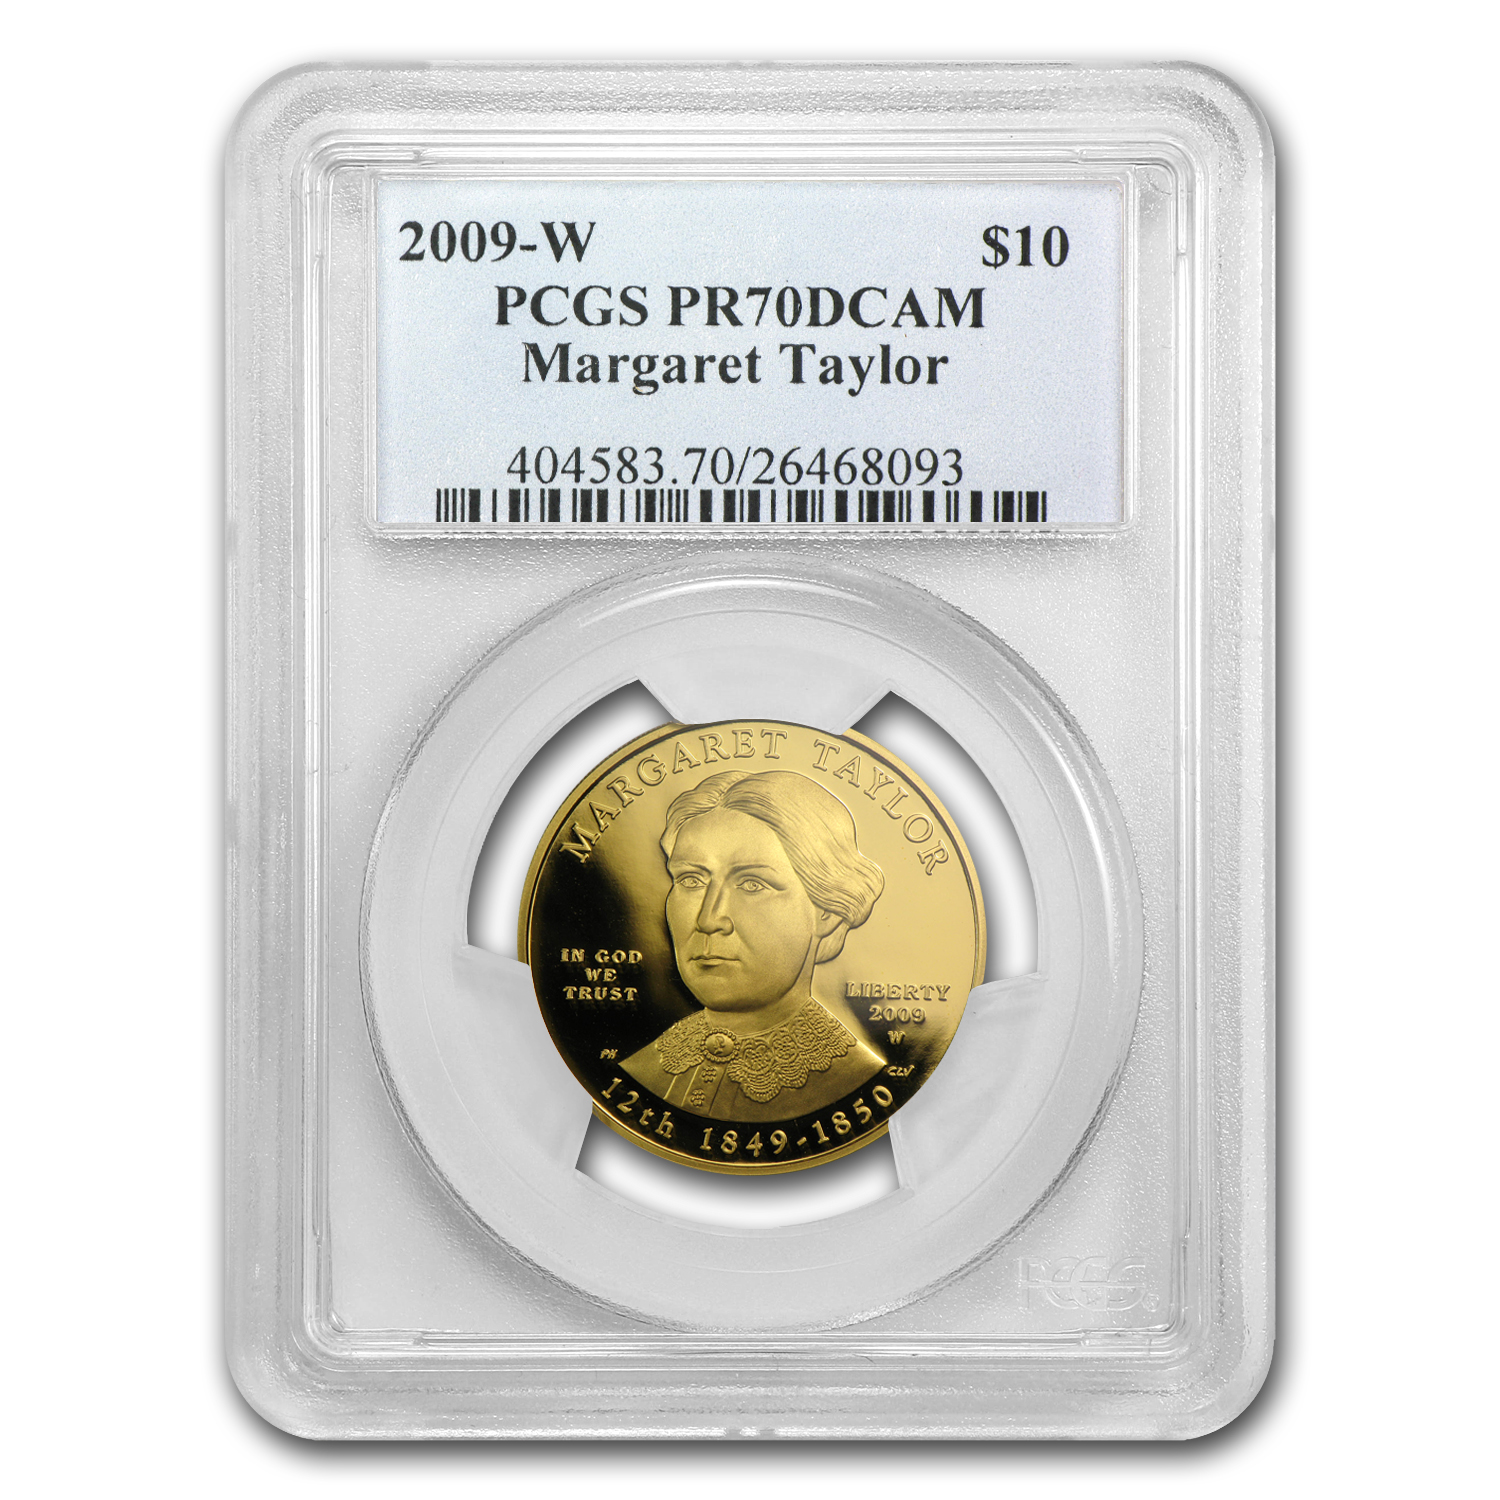 2009-W 1/2 oz Proof Gold Margaret Taylor PR-70 PCGS